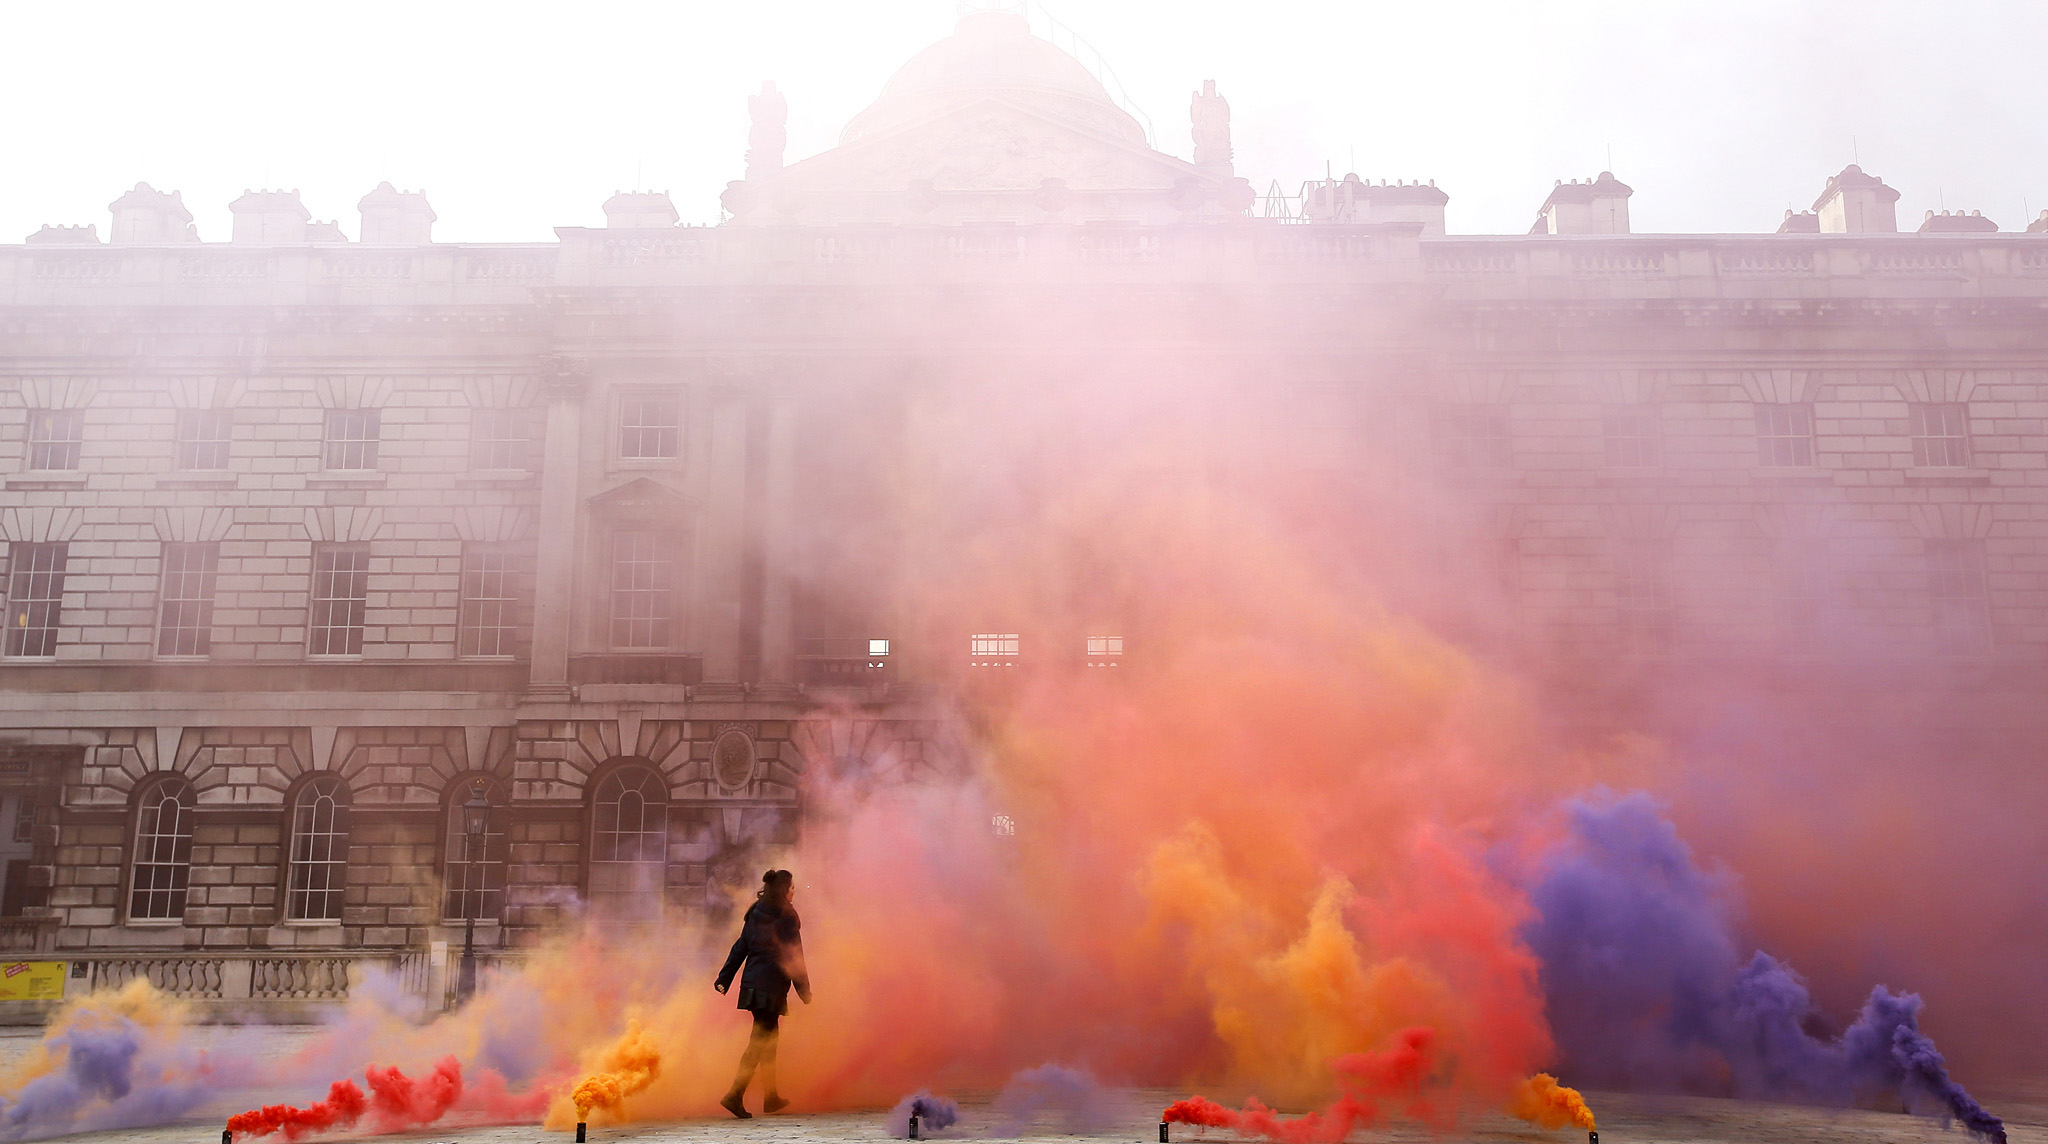 A woman walks through artwork created by artist Filippo Minelli in his series Silence / Shapes in Somerset House